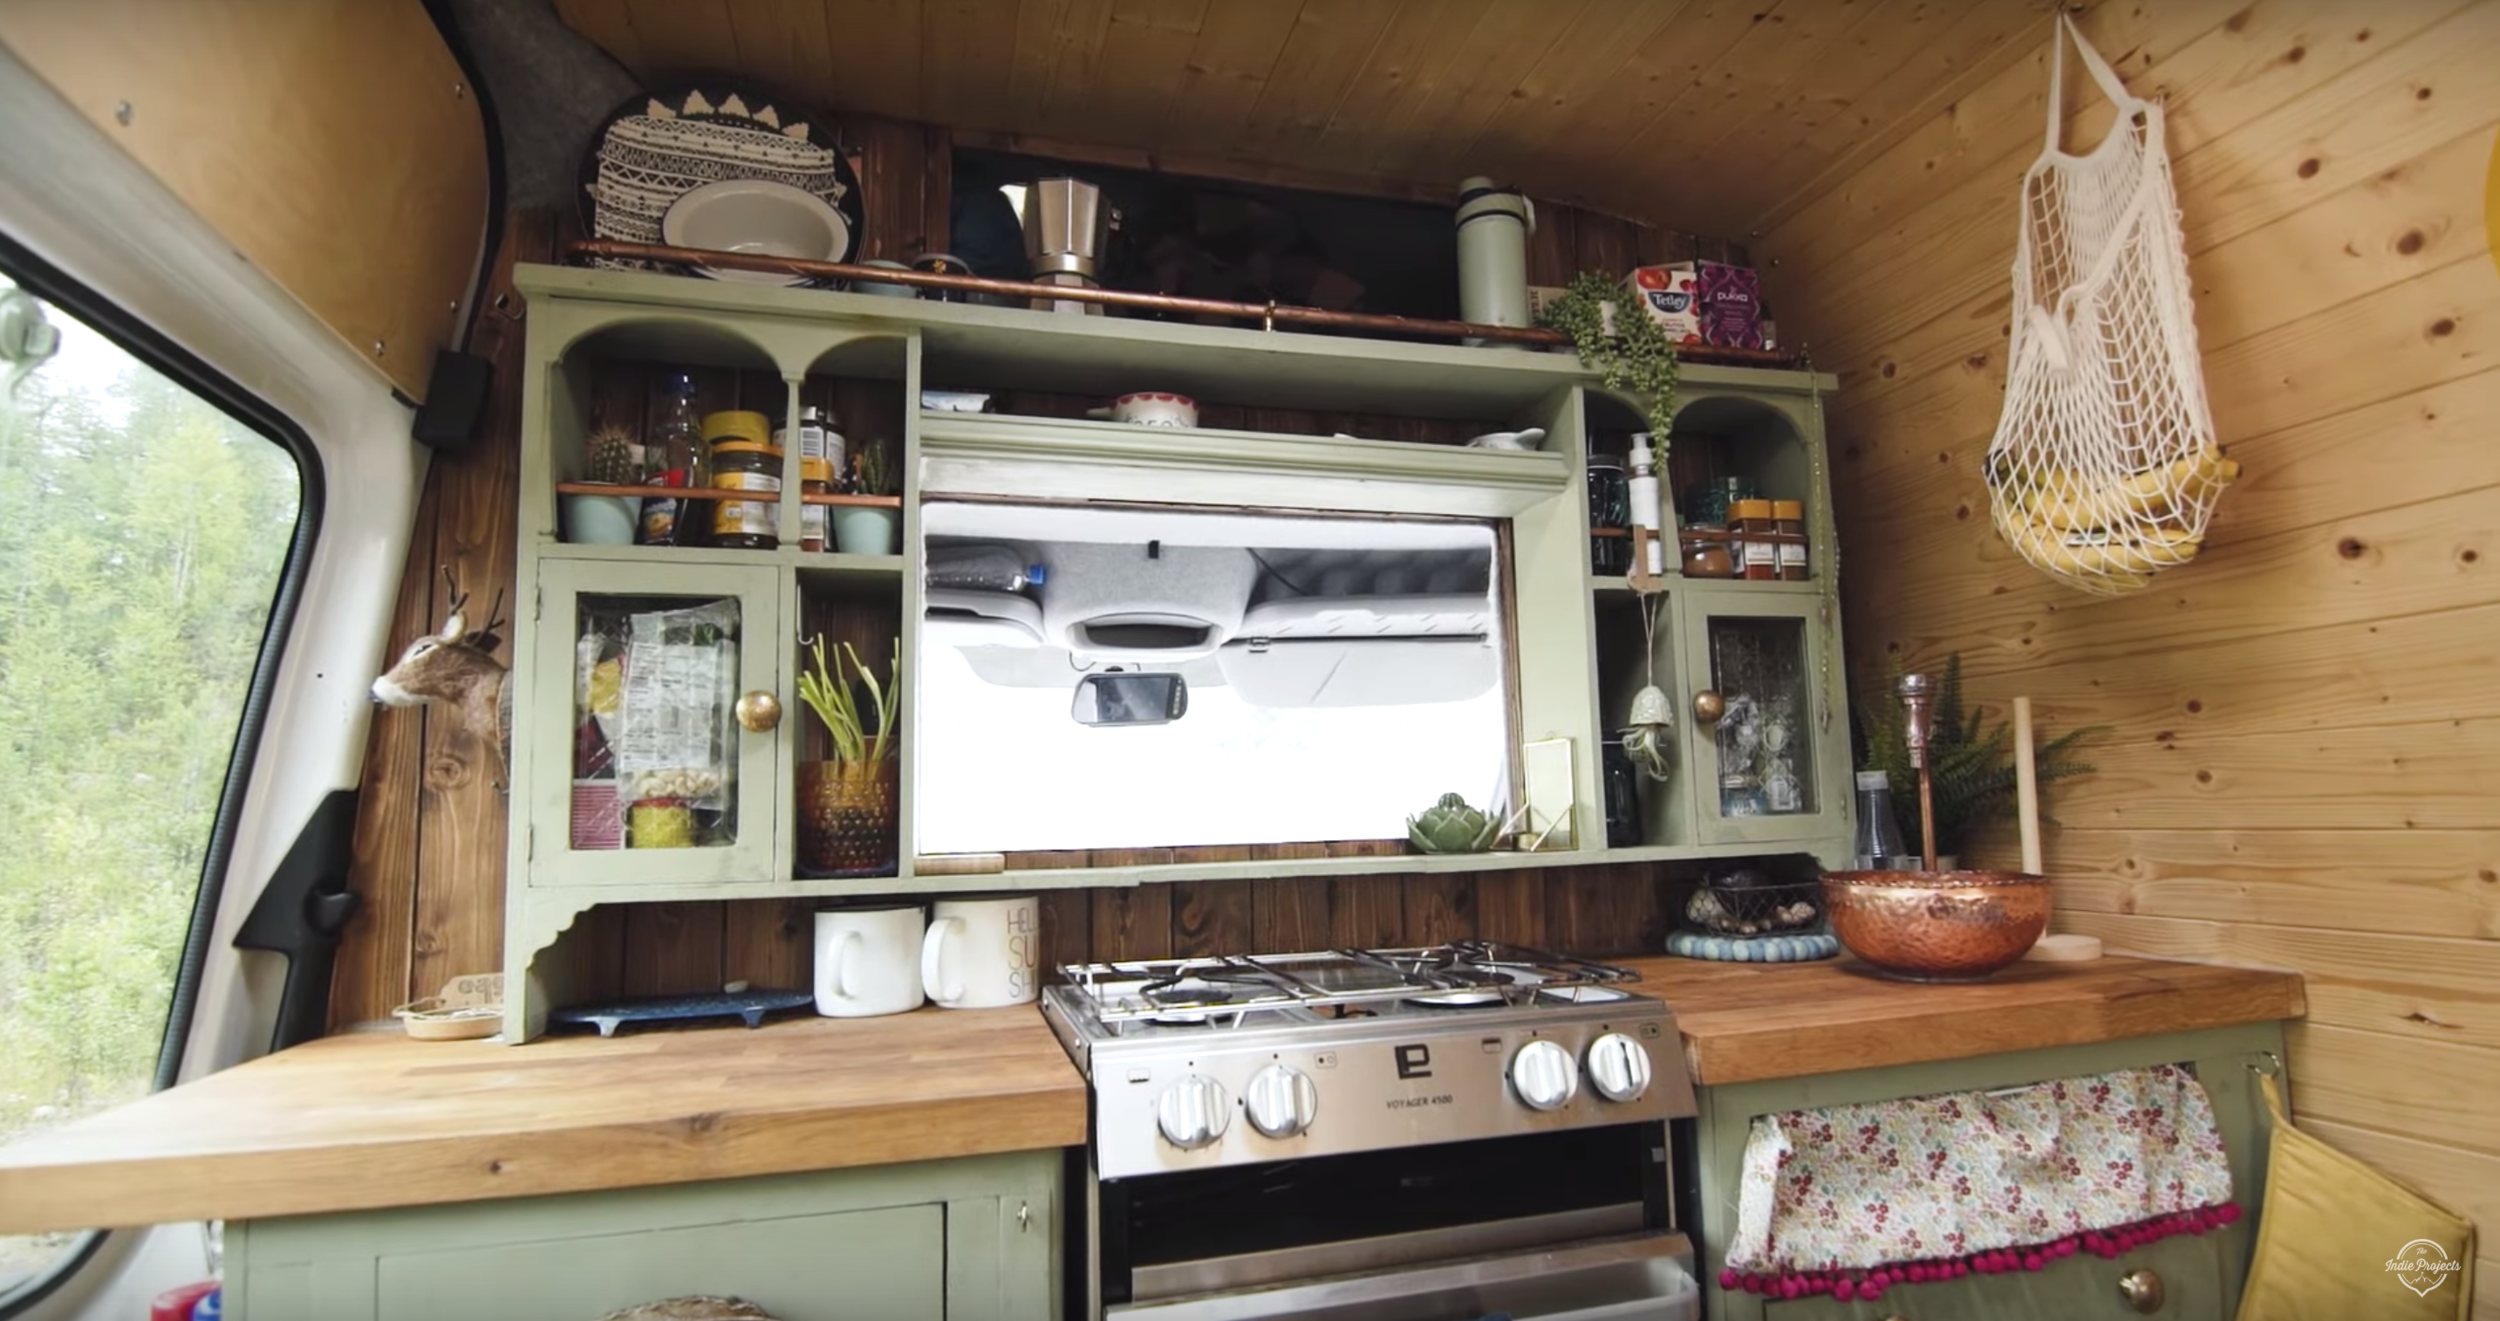 We created our country kitchen vibe with the help of a freebie dresser!